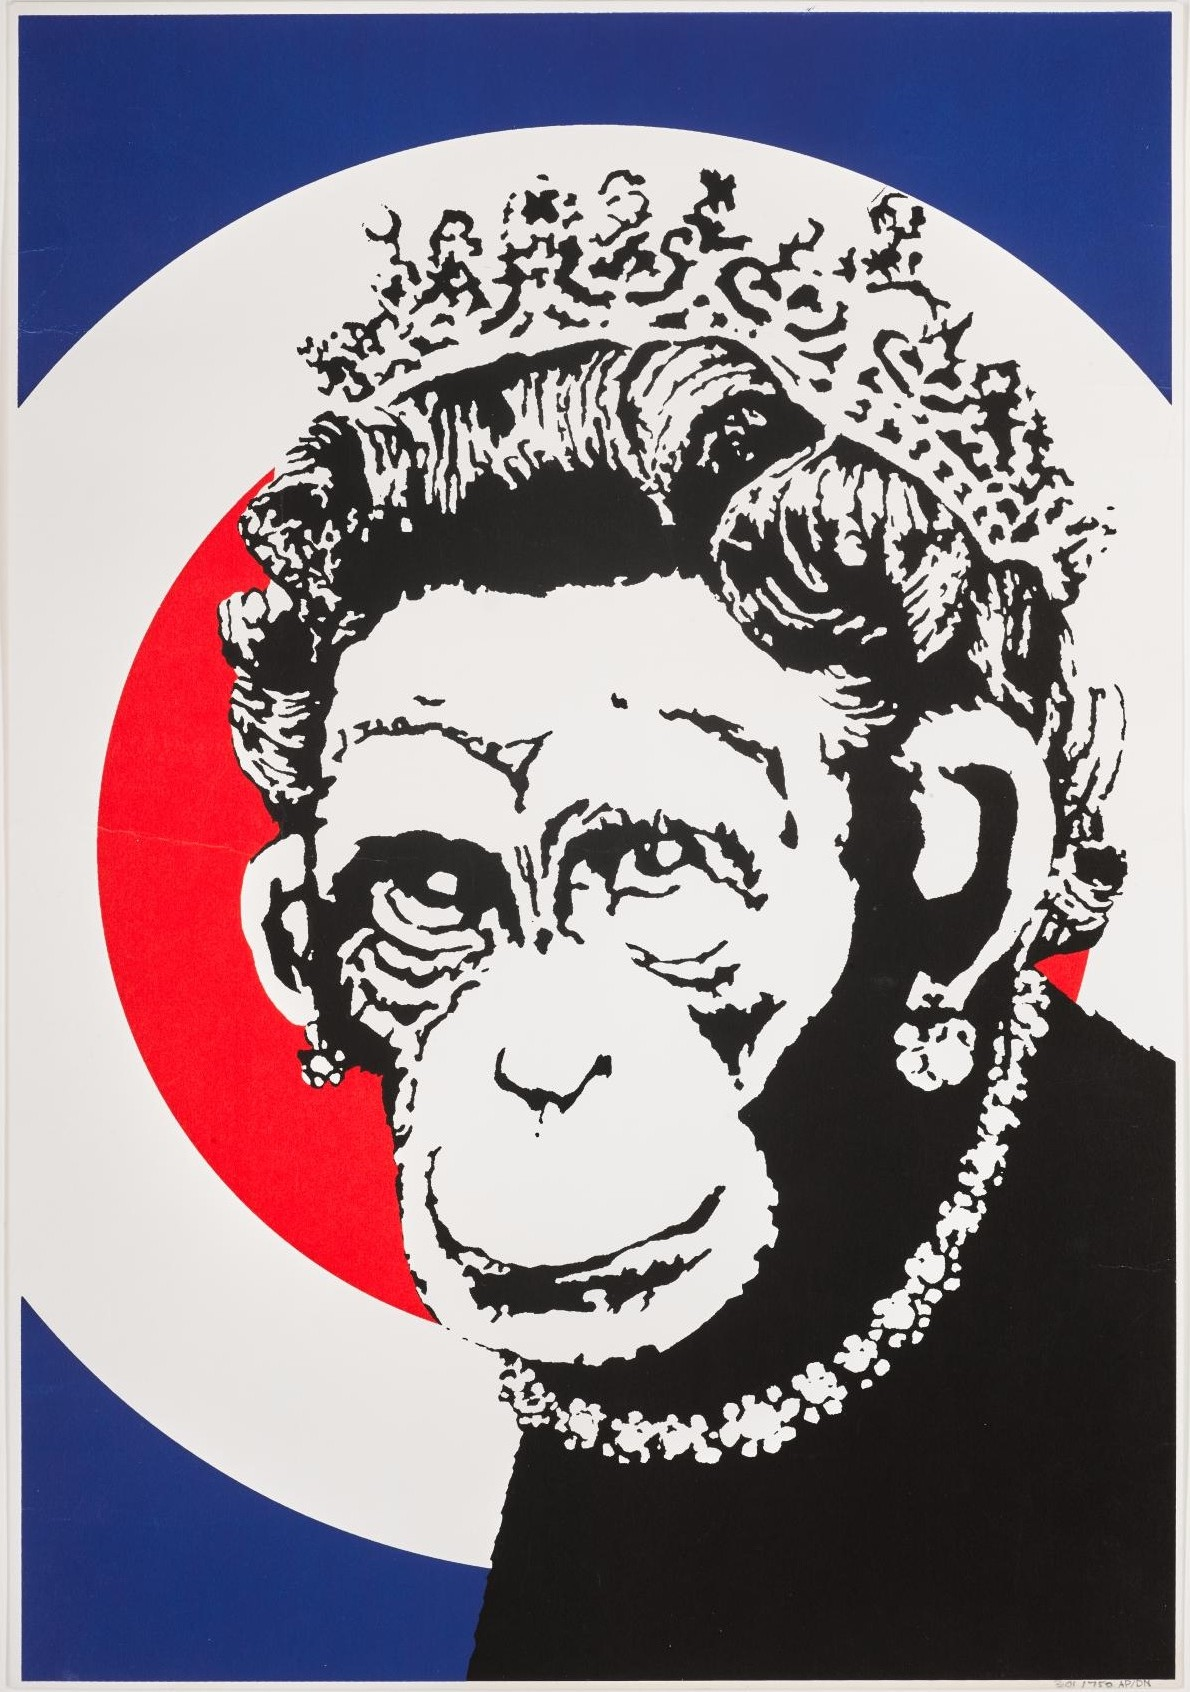 ARTCELS and HOFA Gallery present the exclusive Banksy exhibition 'Catch Me If You Can' in-gallery and virtually (8 – 15 October 2020)